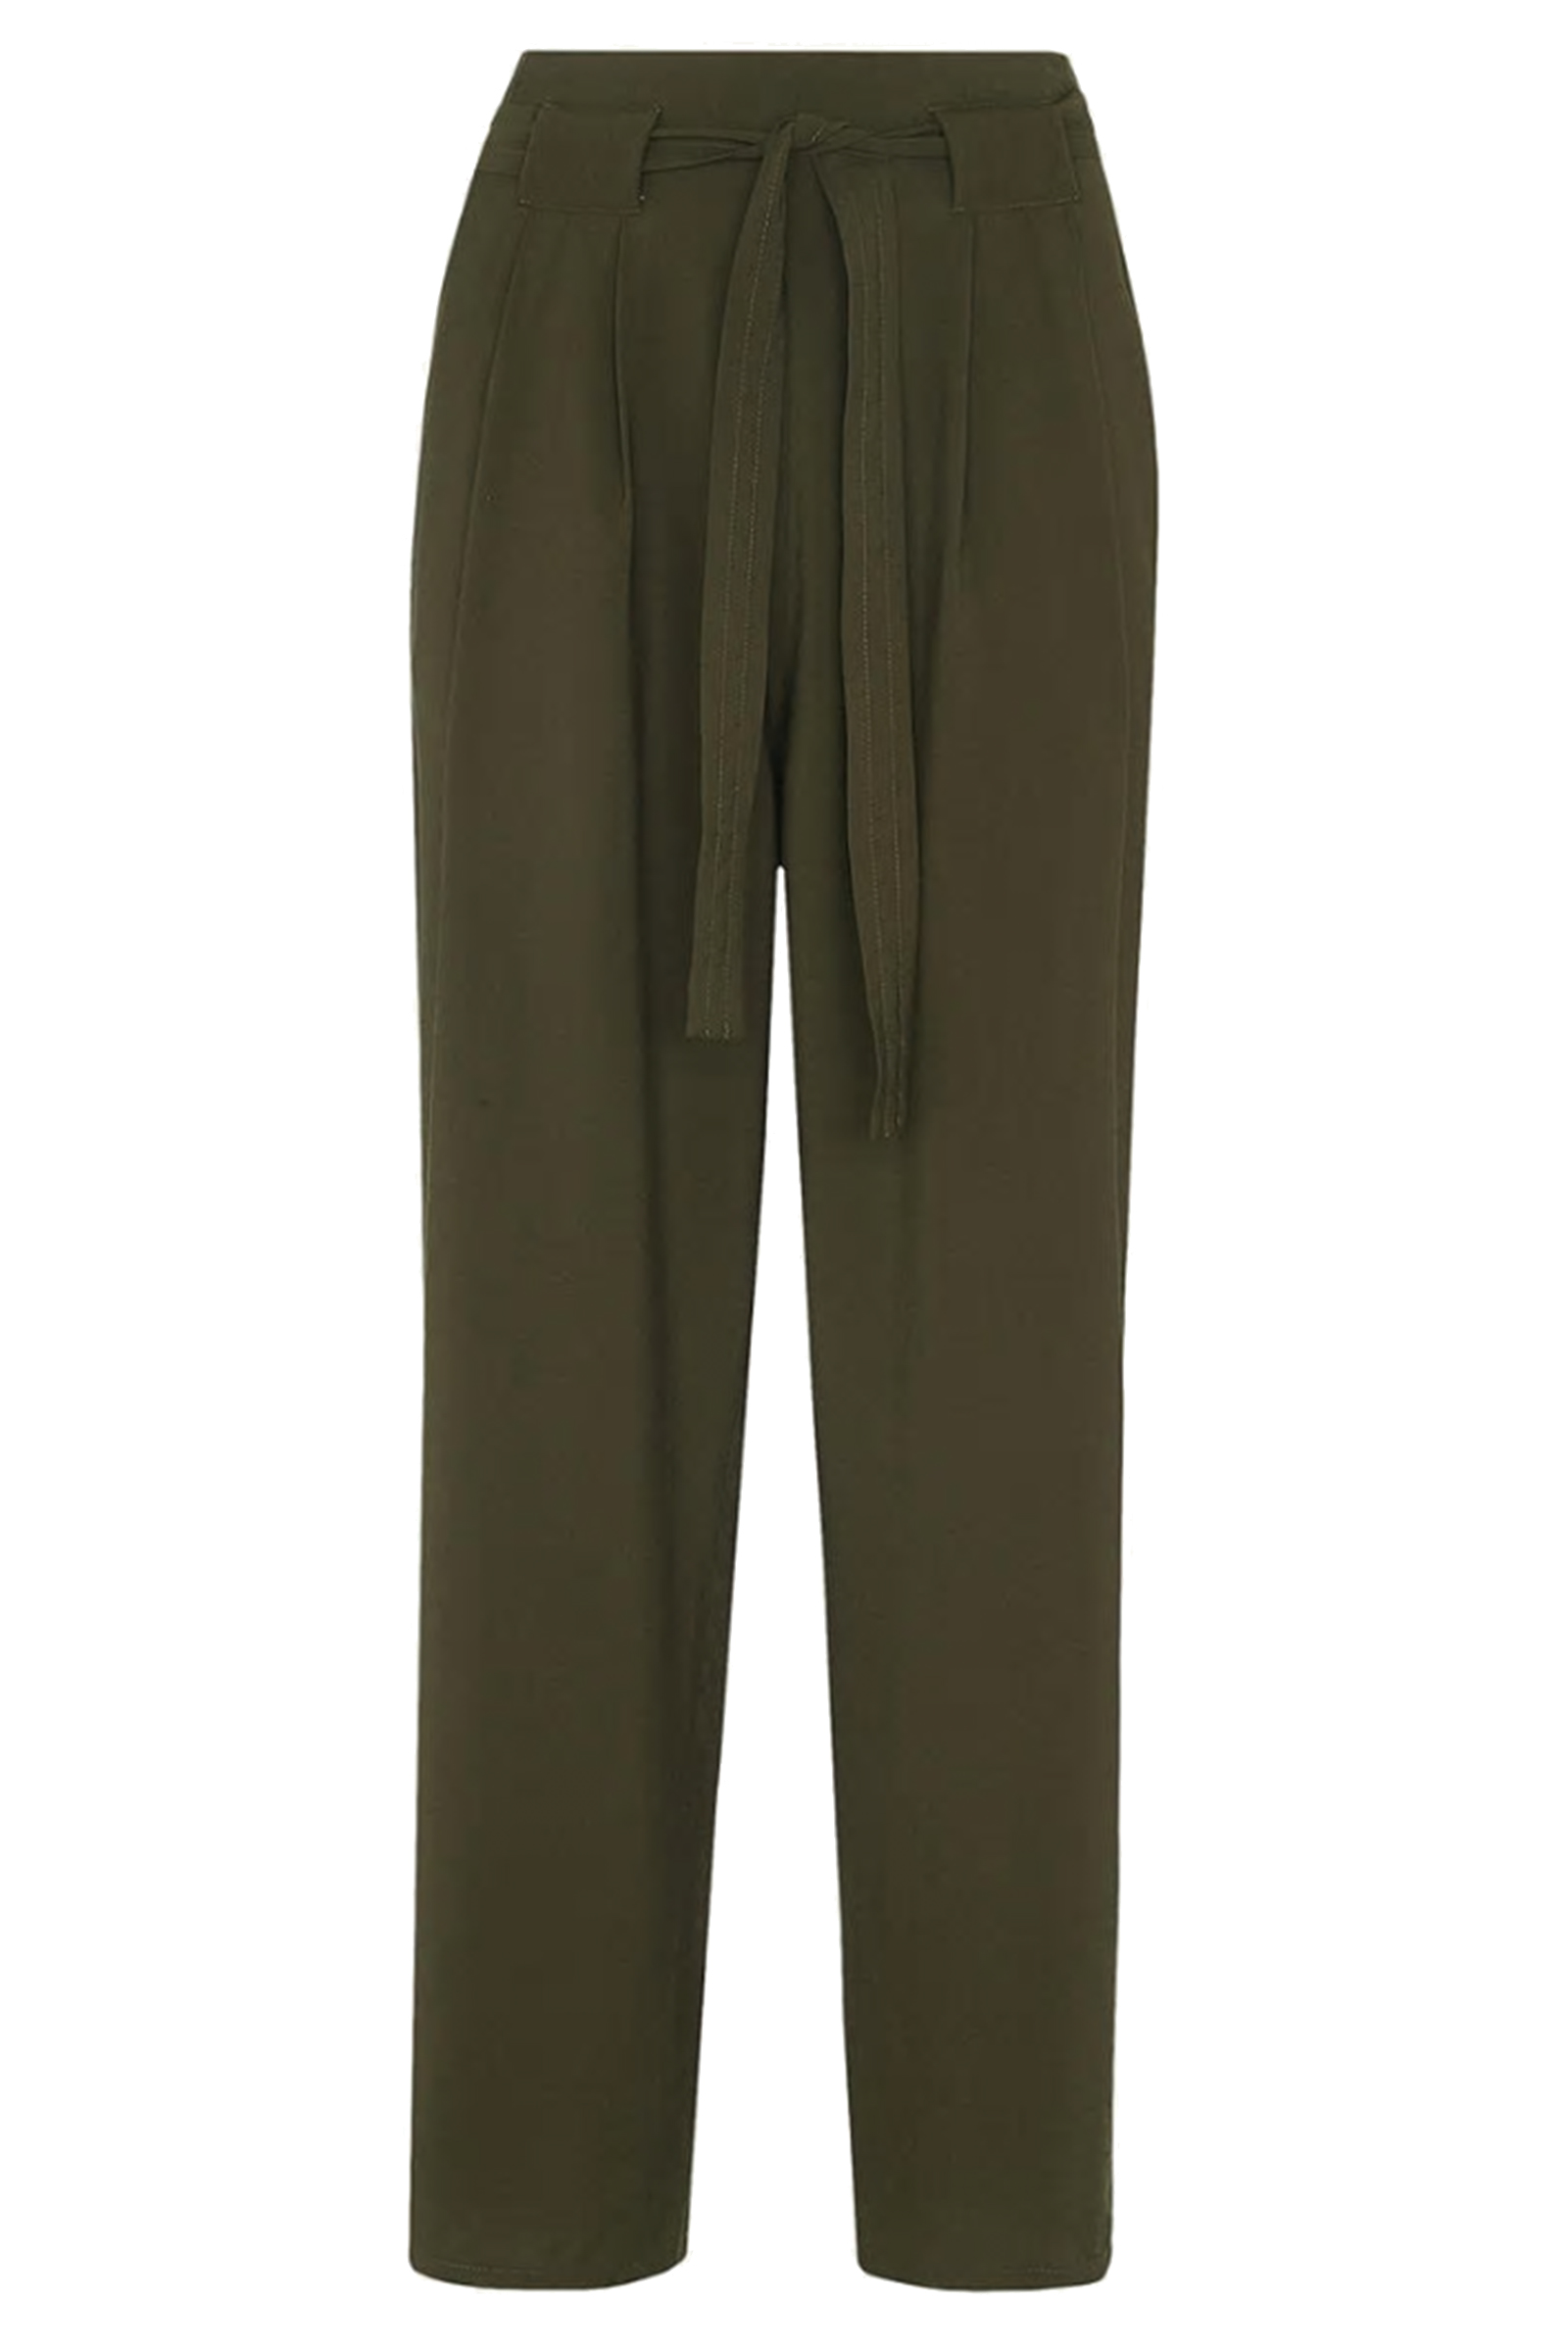 Whistles-Khaki-Trousers